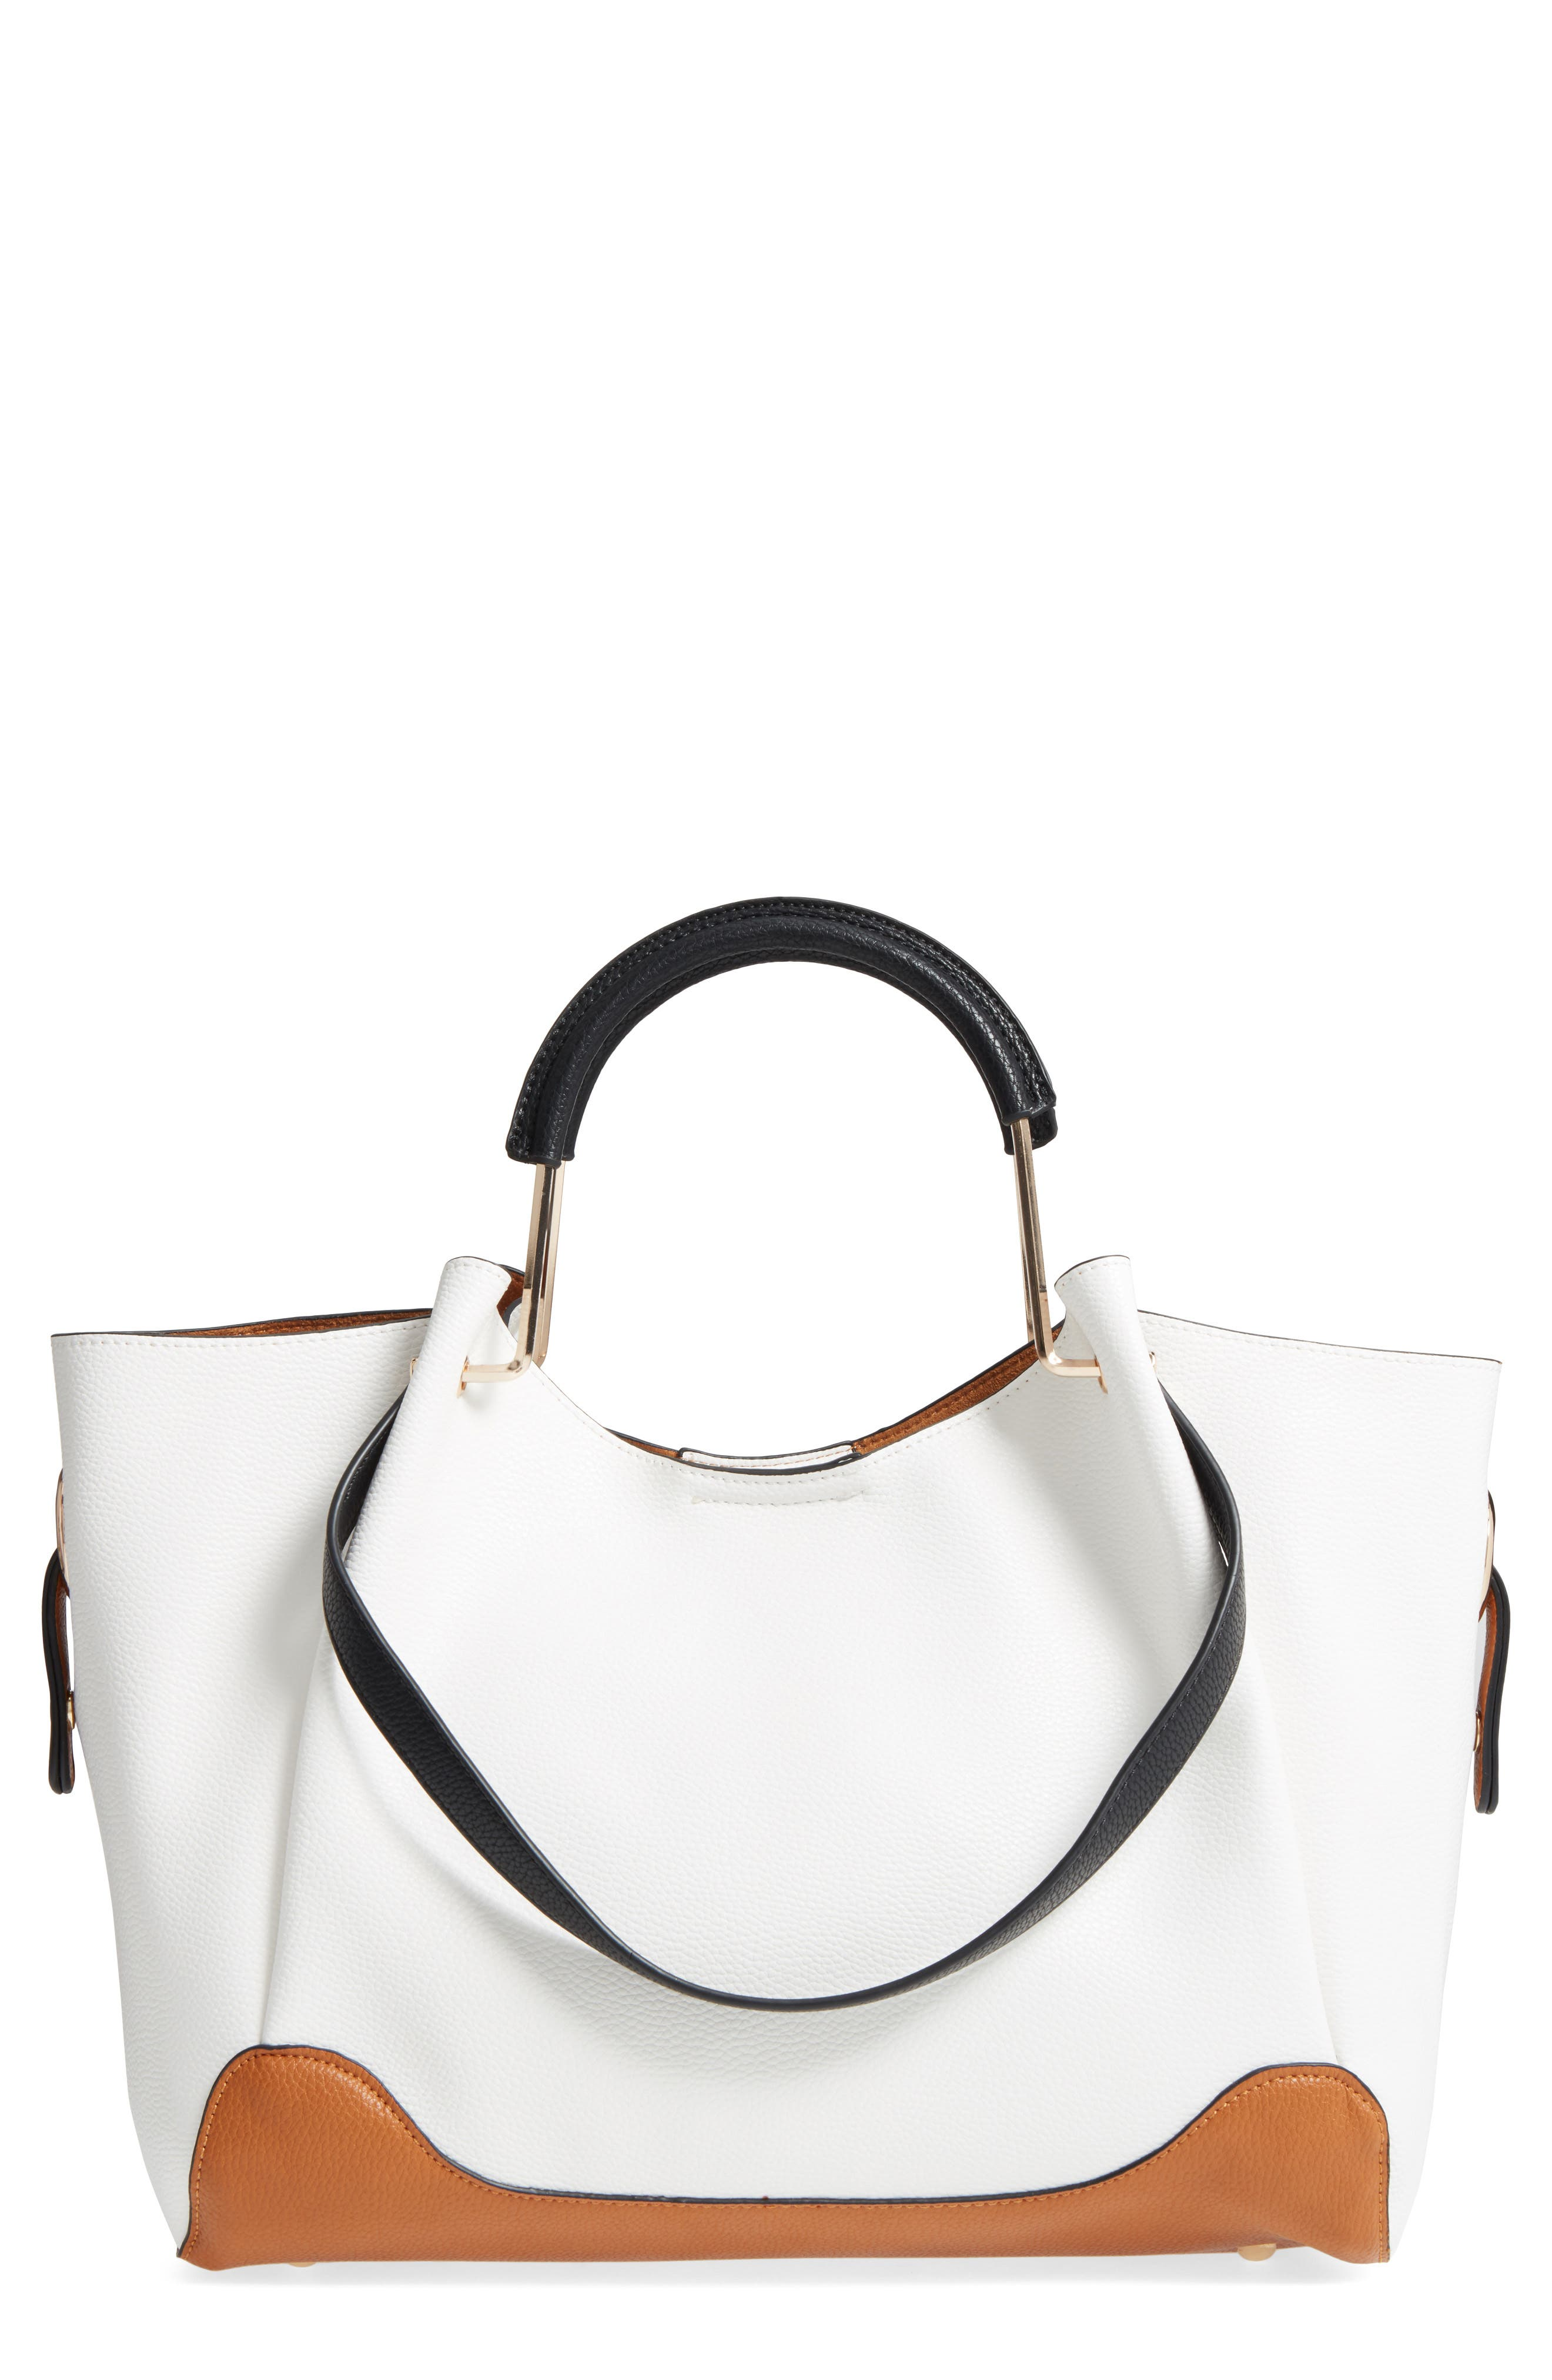 Sondra Roberts Faux Leather Tote & Canvas Pouch